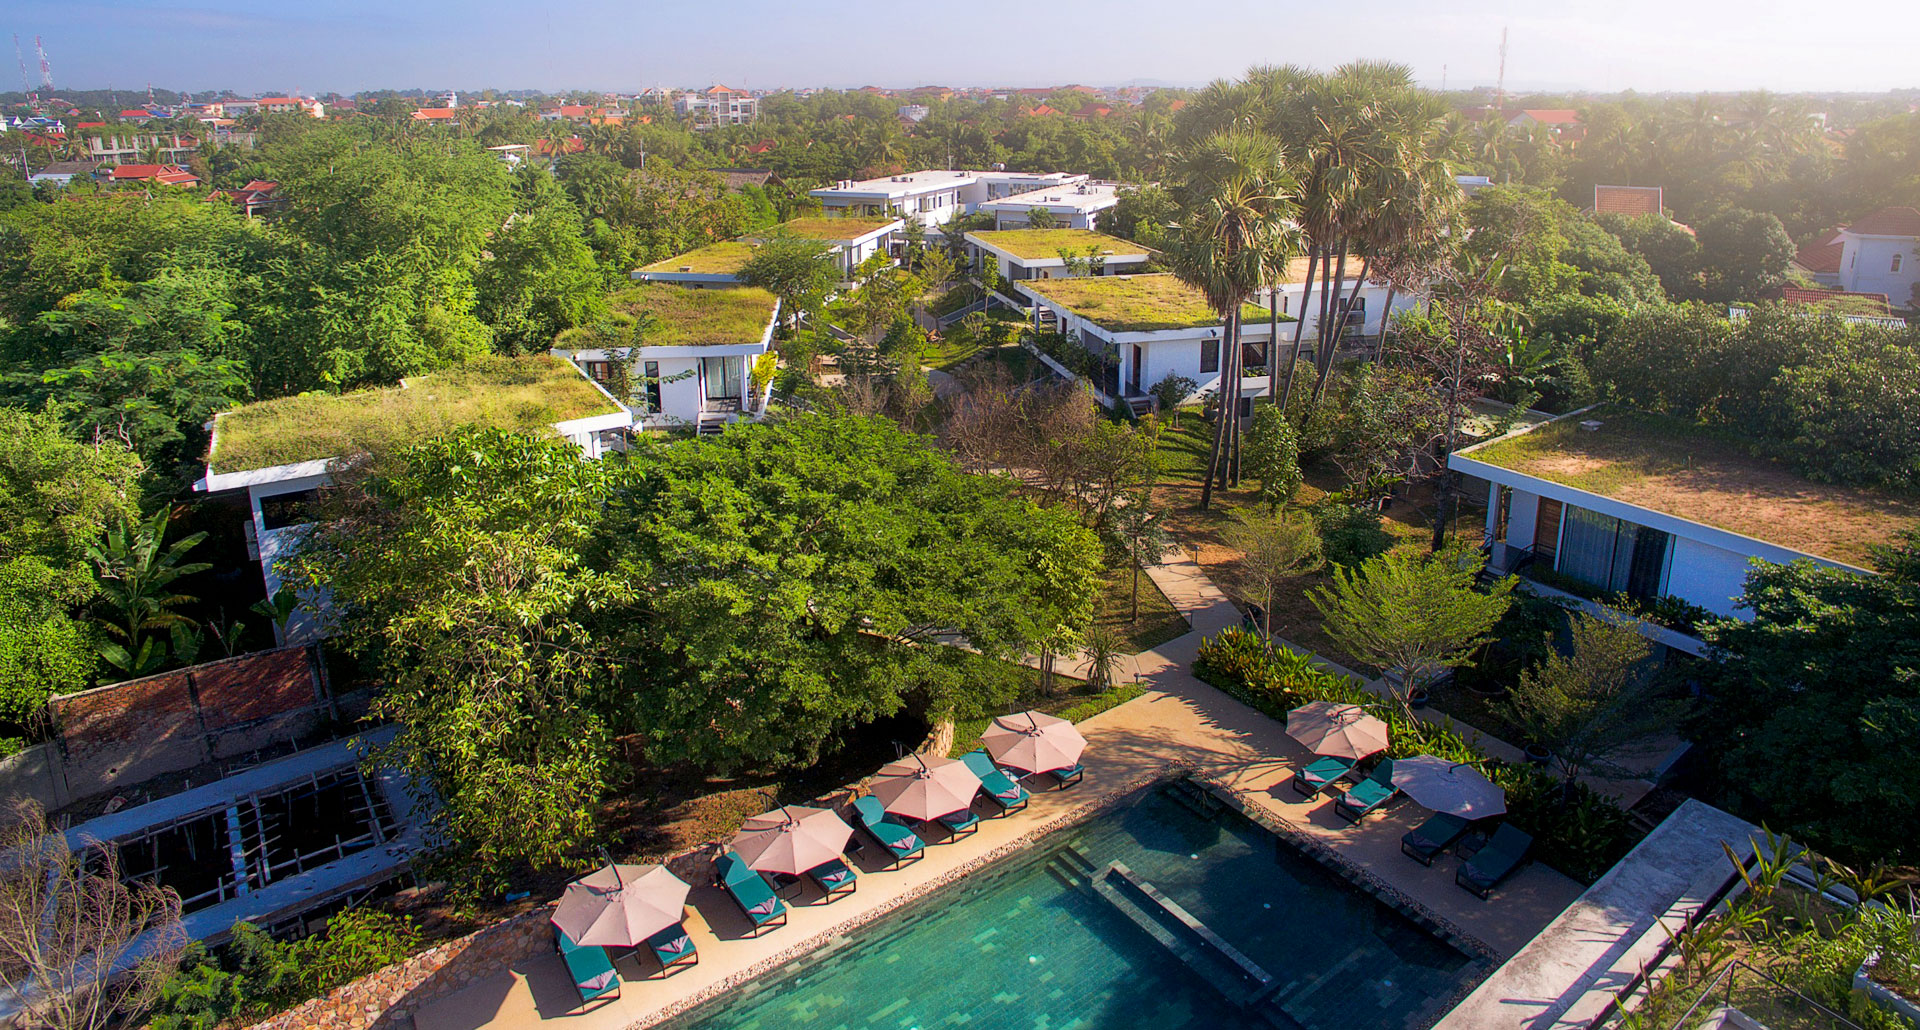 Hillocks Hotel & Spa - boutique hotel in Siem Reap